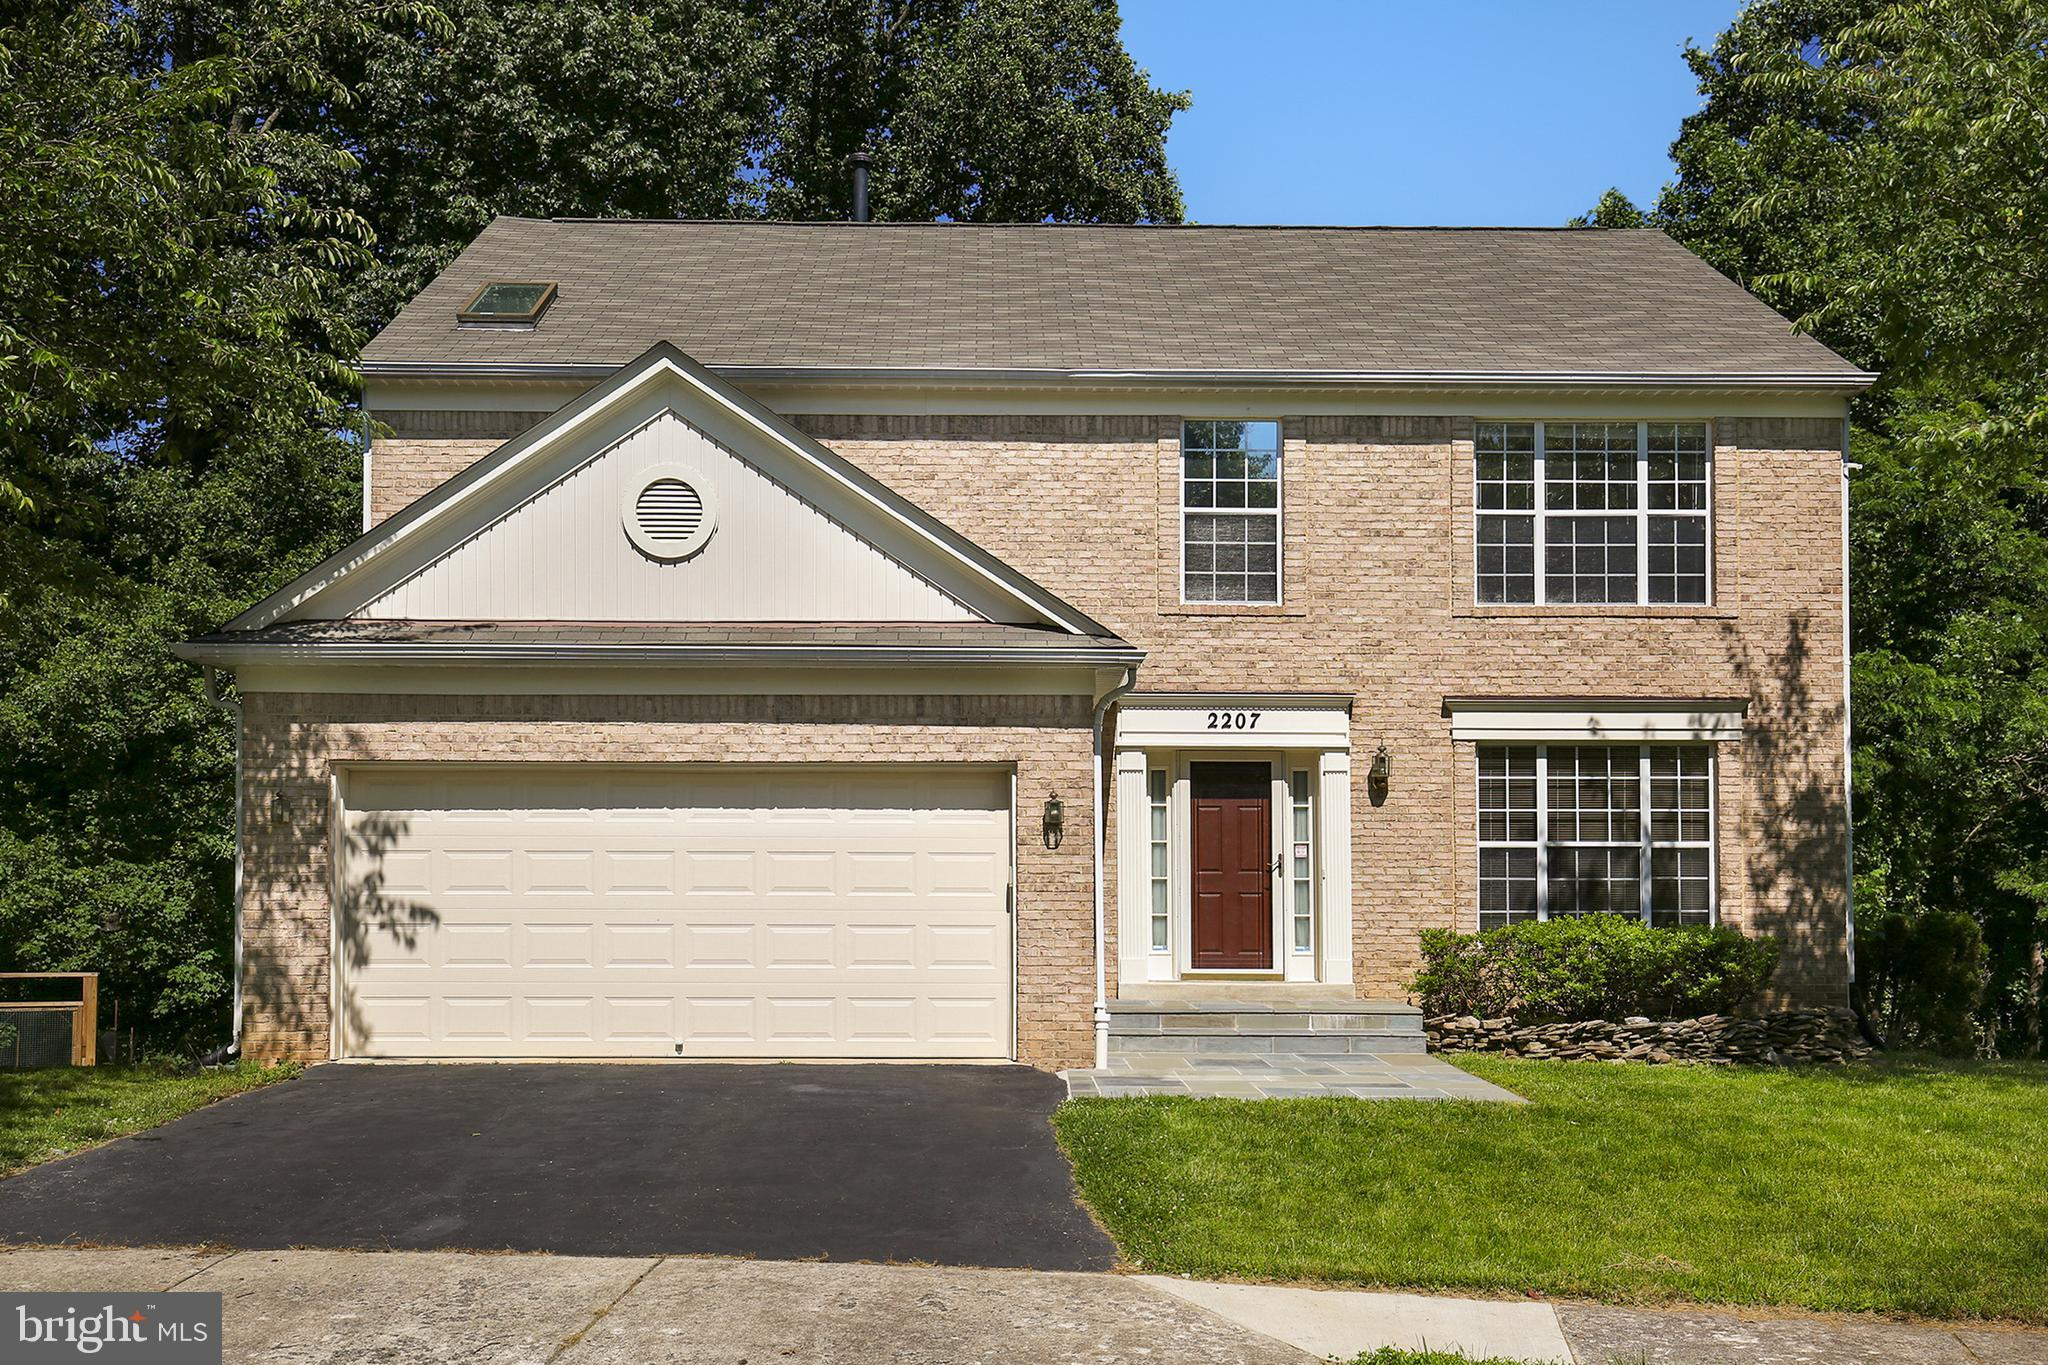 2207 COLD MEADOW WAY, SILVER SPRING, MD 20906